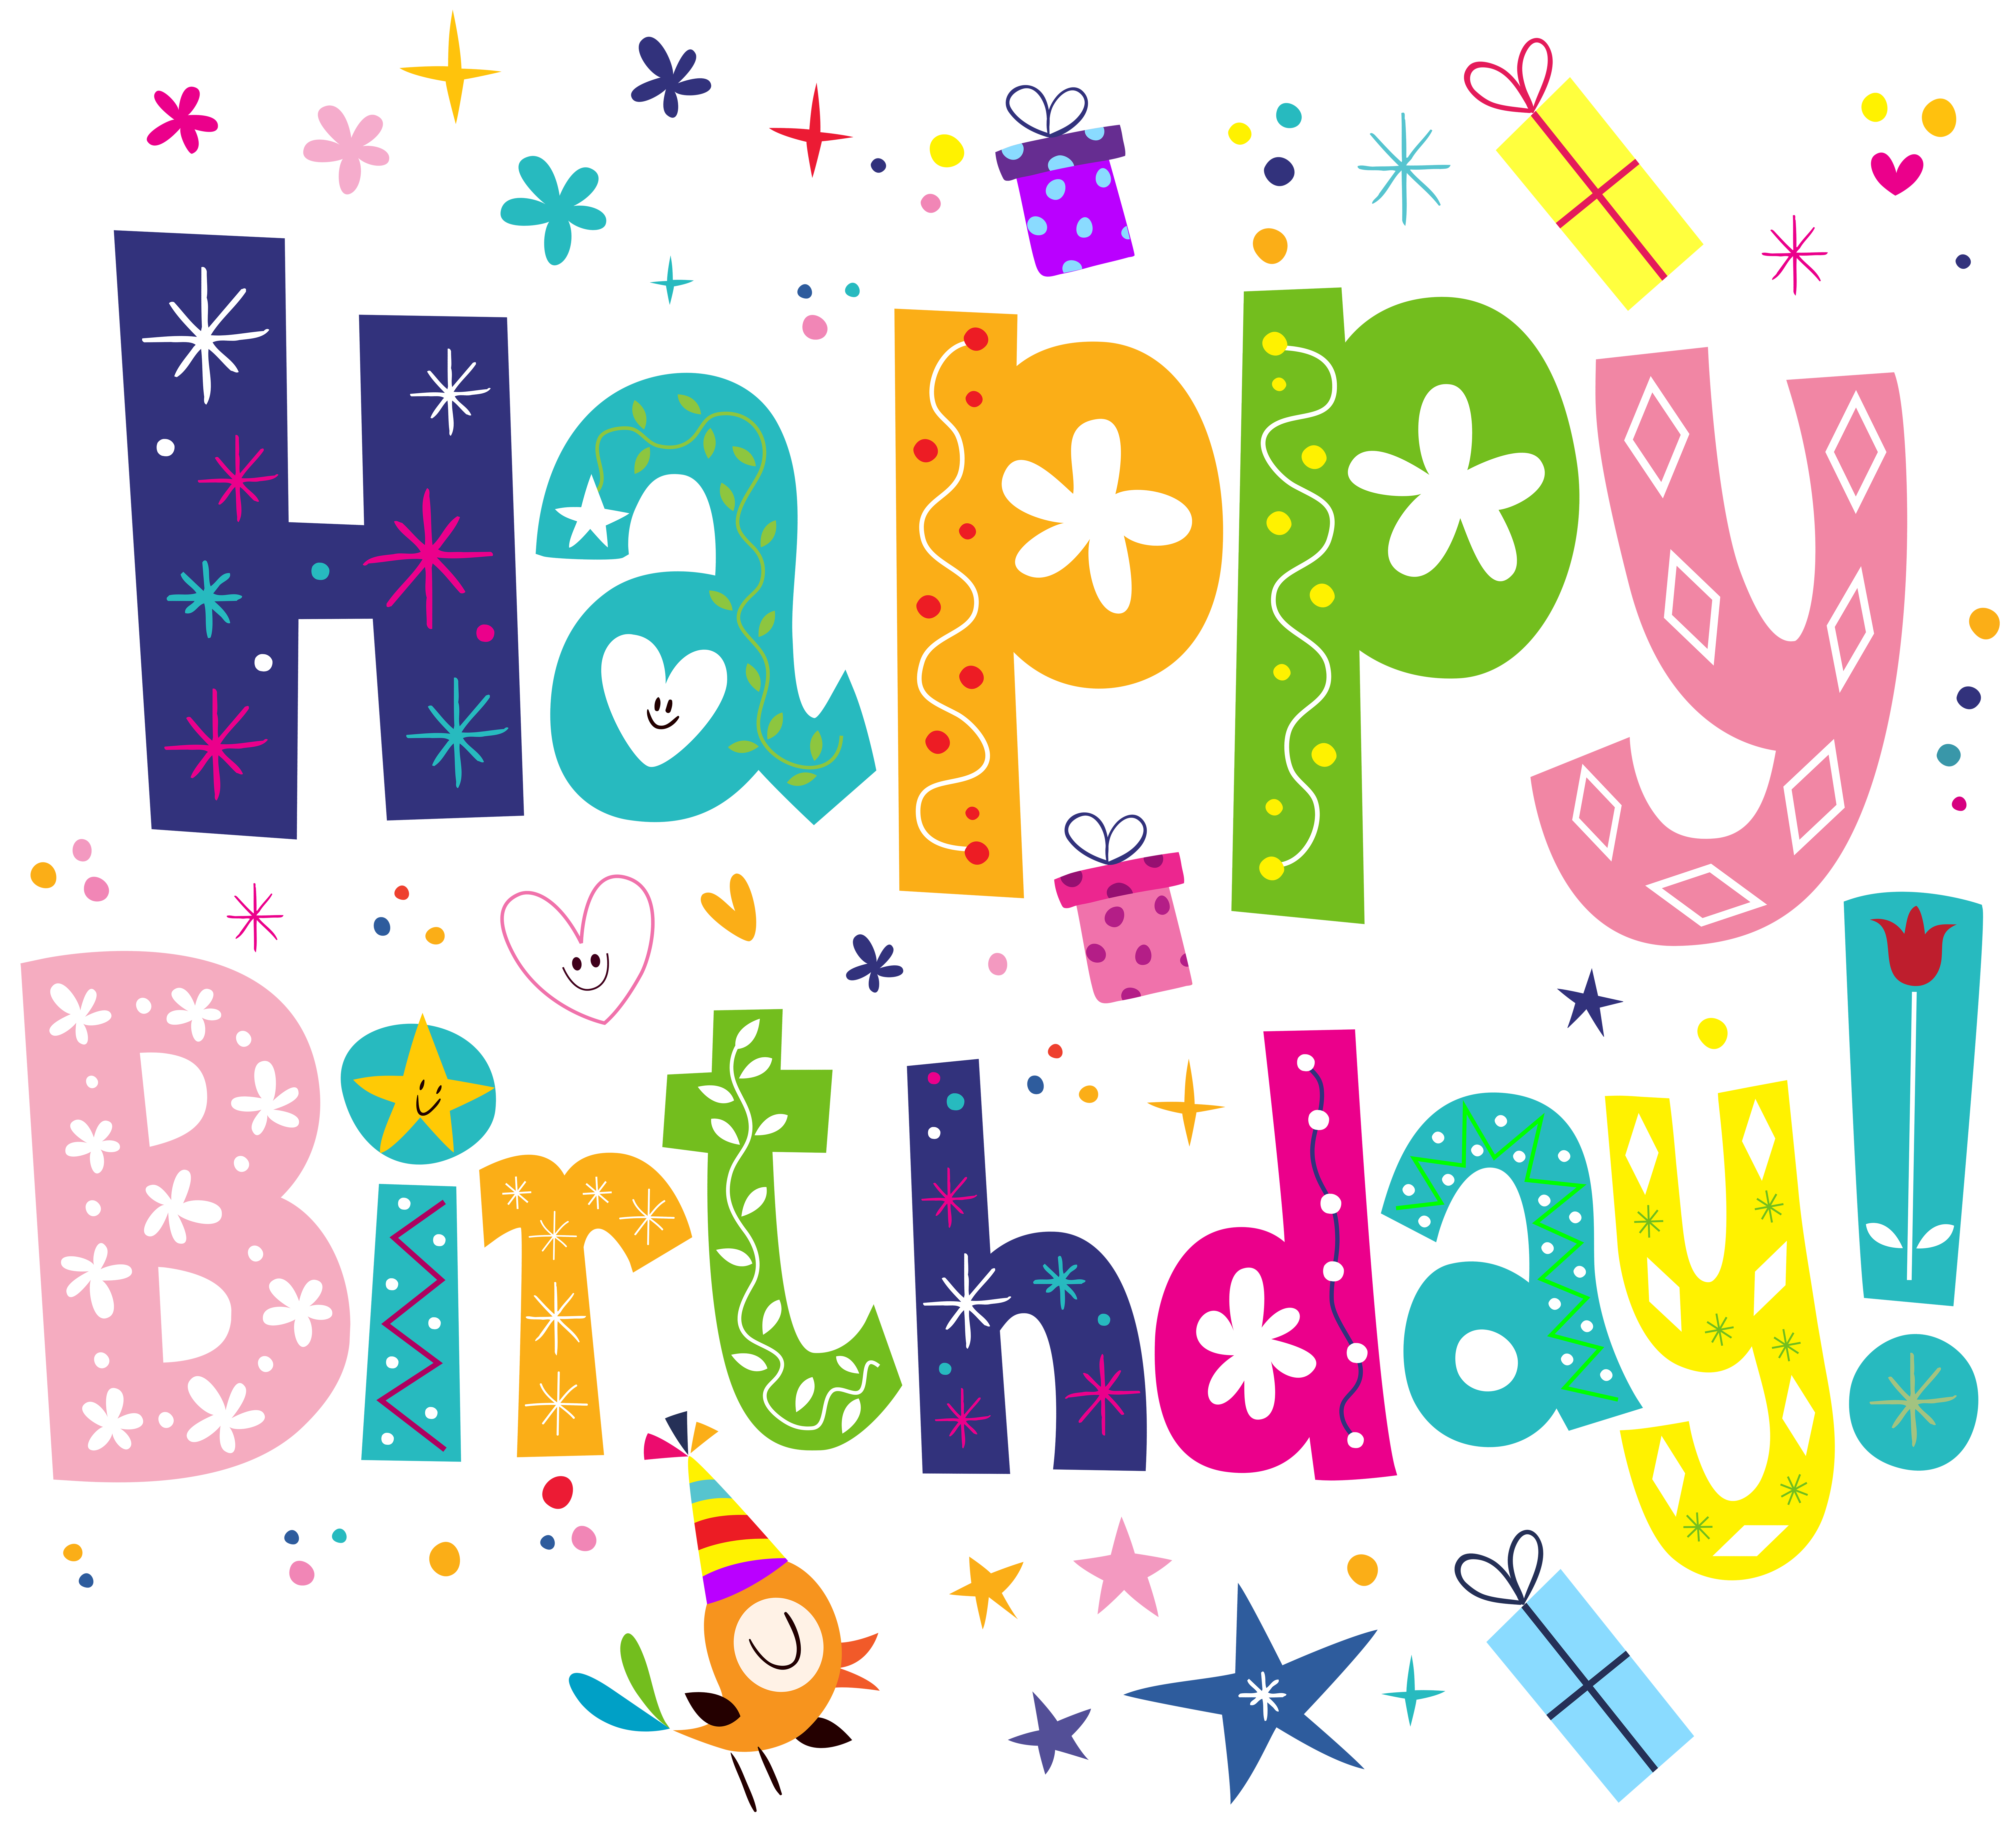 Cute clip art image. Happy birthday png transparent background freeuse